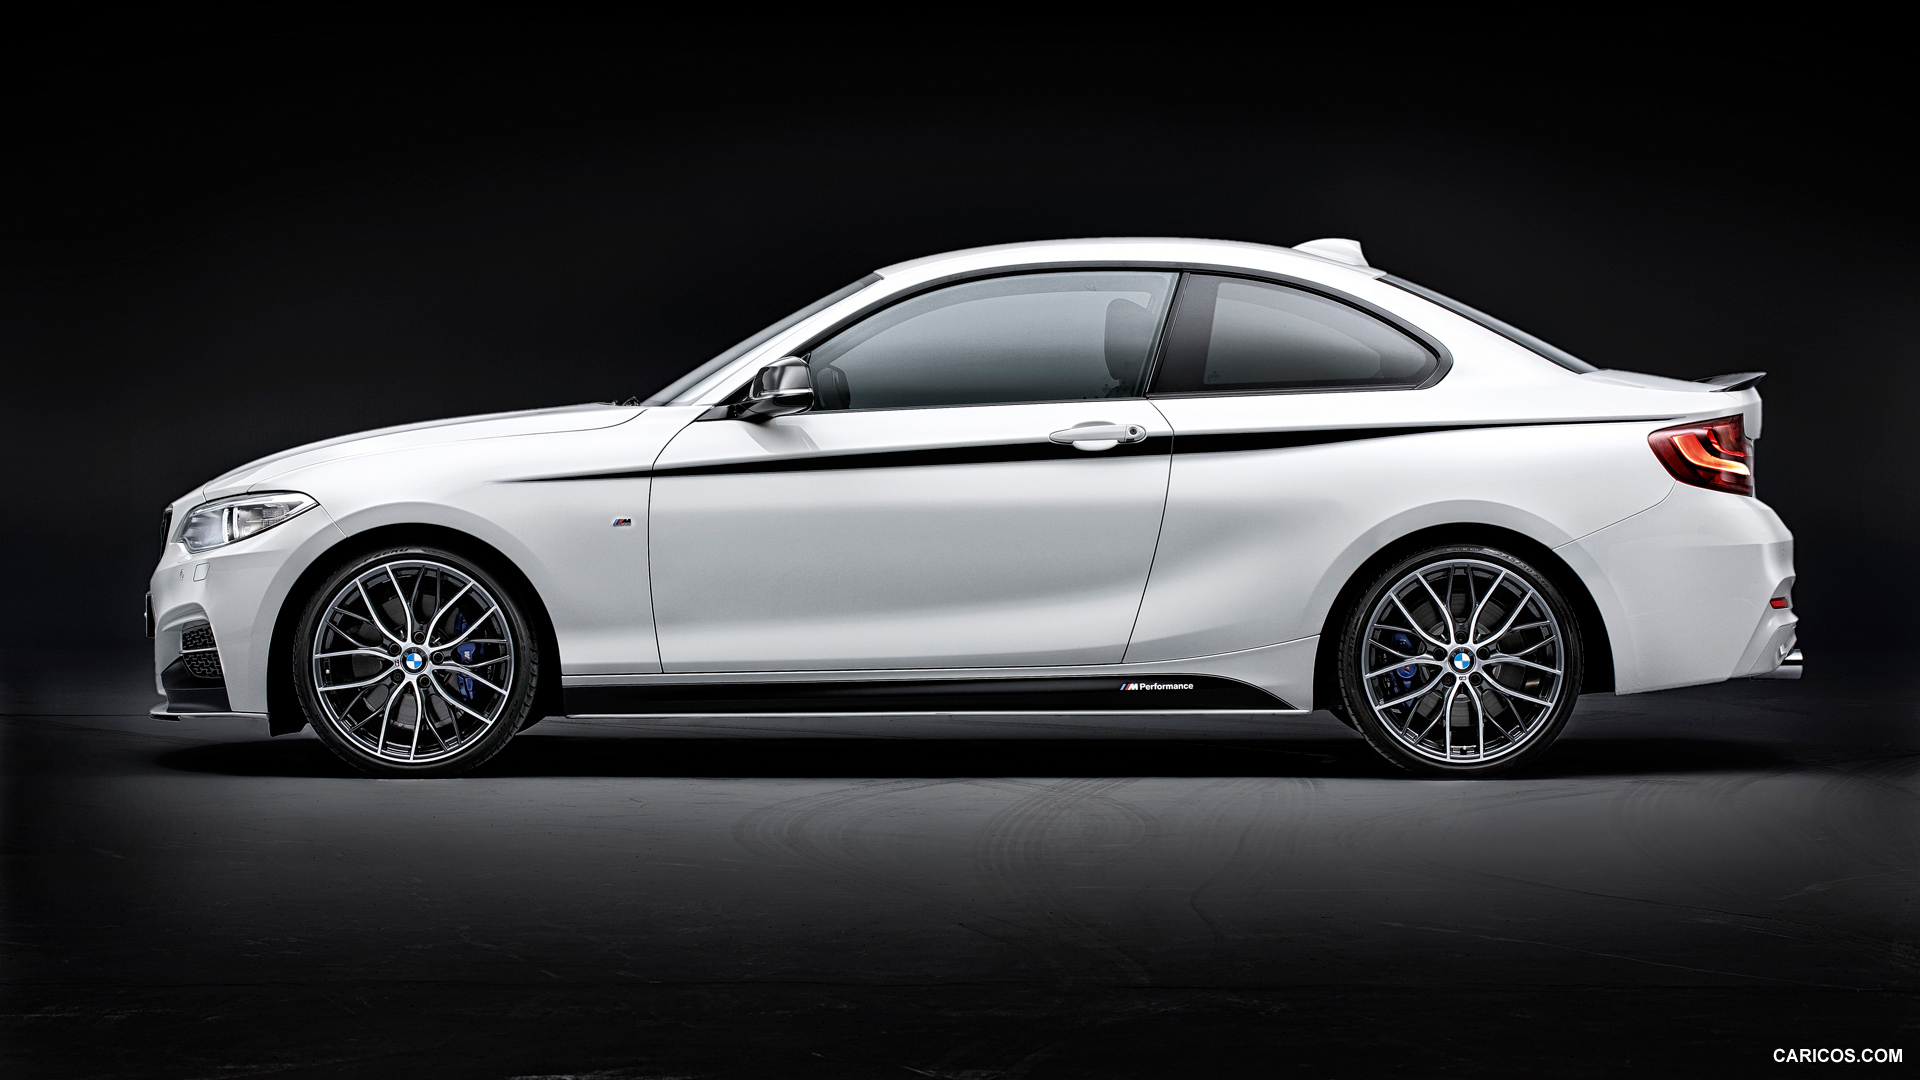 HQ 2014 BMW 2 Series Coupe Wallpapers | File 574.15Kb